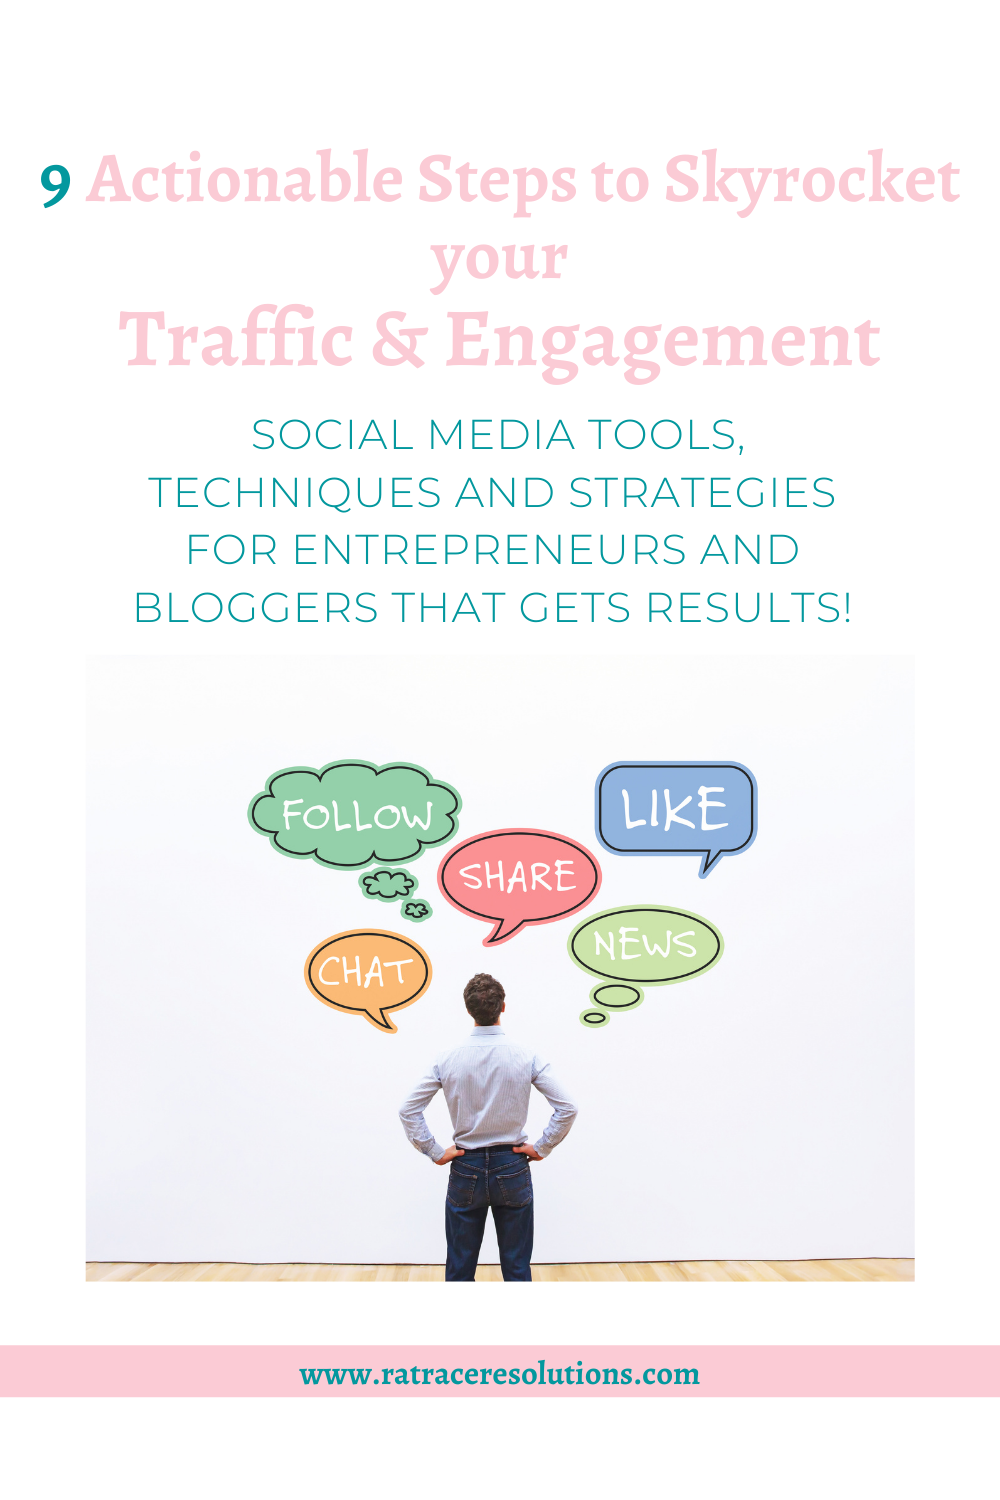 Strategies to increase your website traffic and engagement